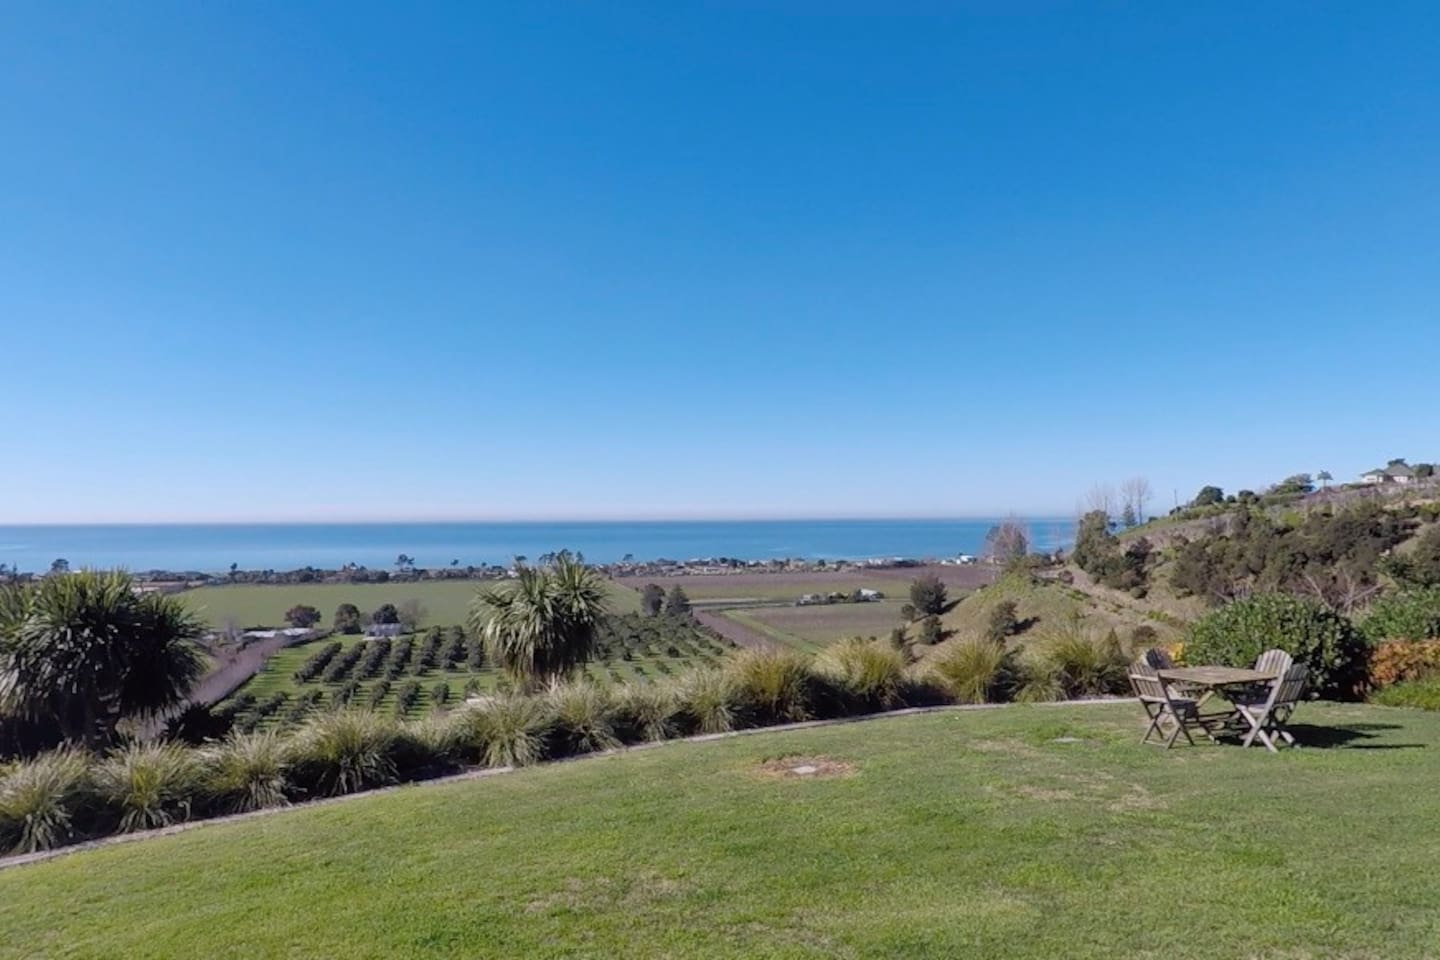 So happy to be sharing our piece of paradise ... Views to Mahia and to Cape Kidnappers, Ever changing Views over looking  Avocado, fruit and cropping orchards ... Fascinating watching cruise ships , Wildlife , Nature.